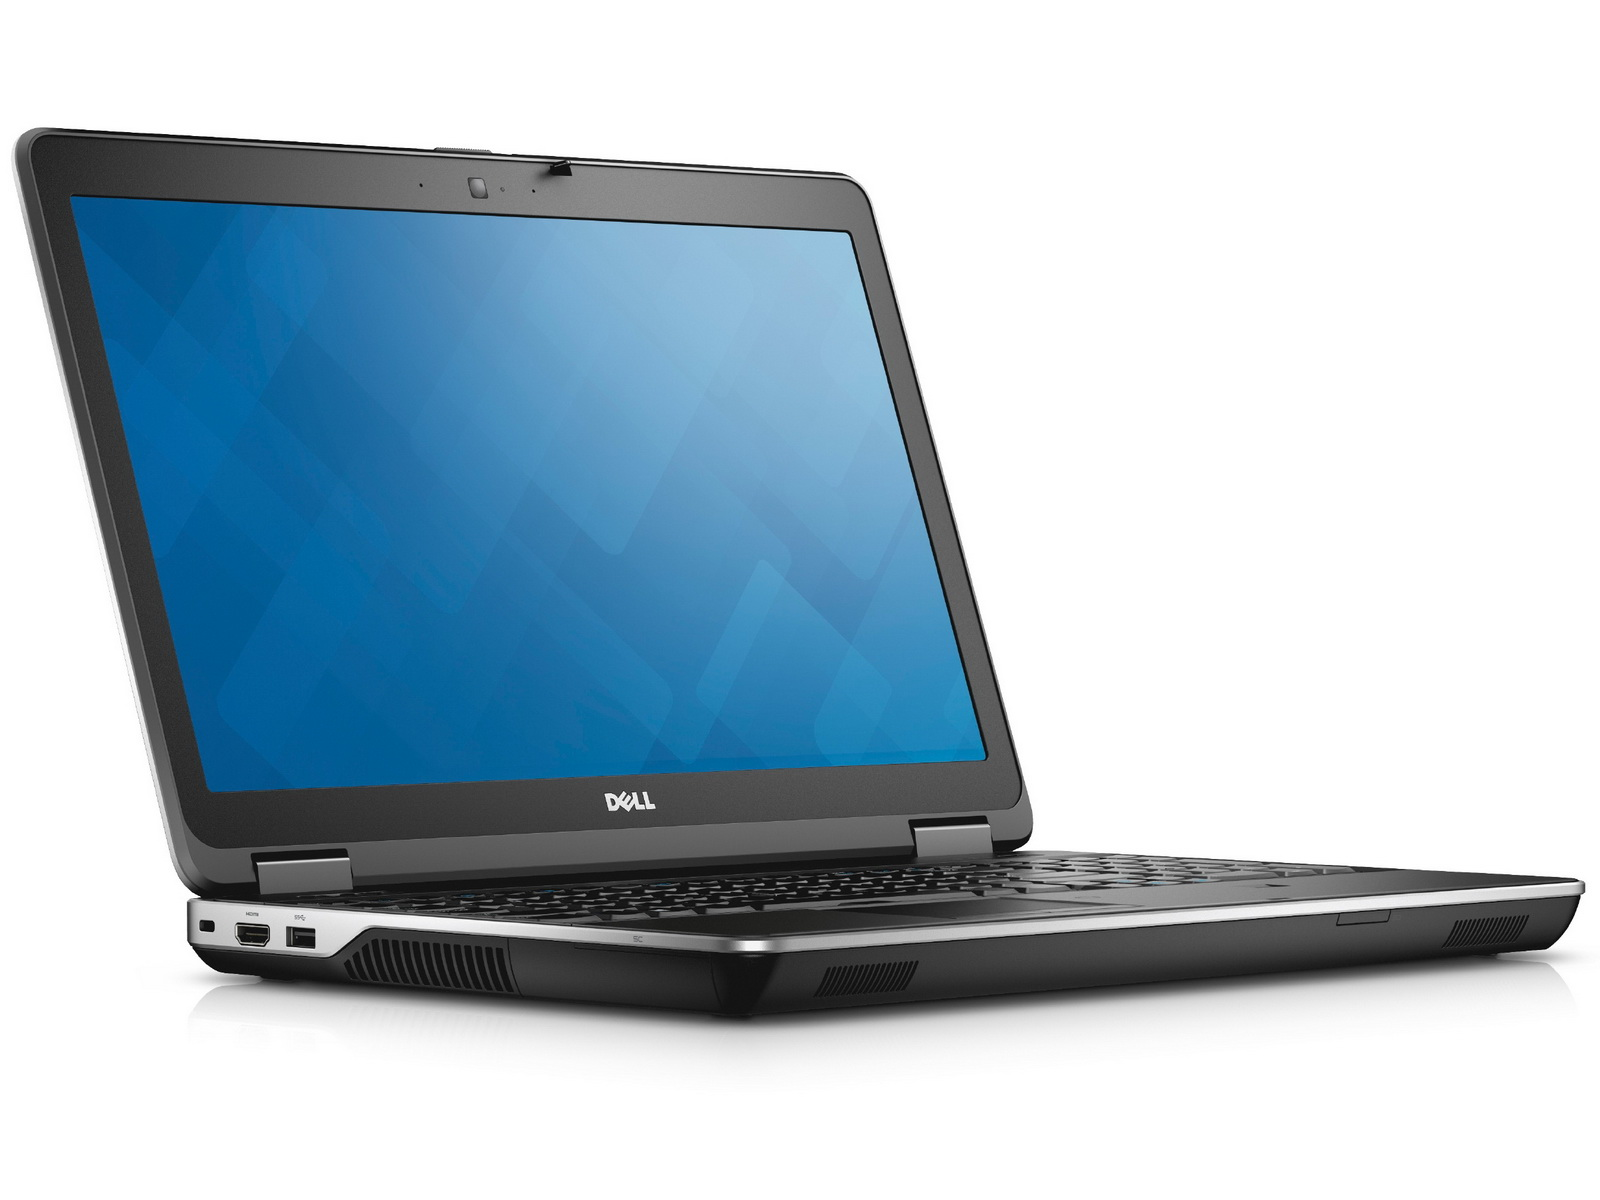 Dell Latitude E6540 - Core I7-4900MQ